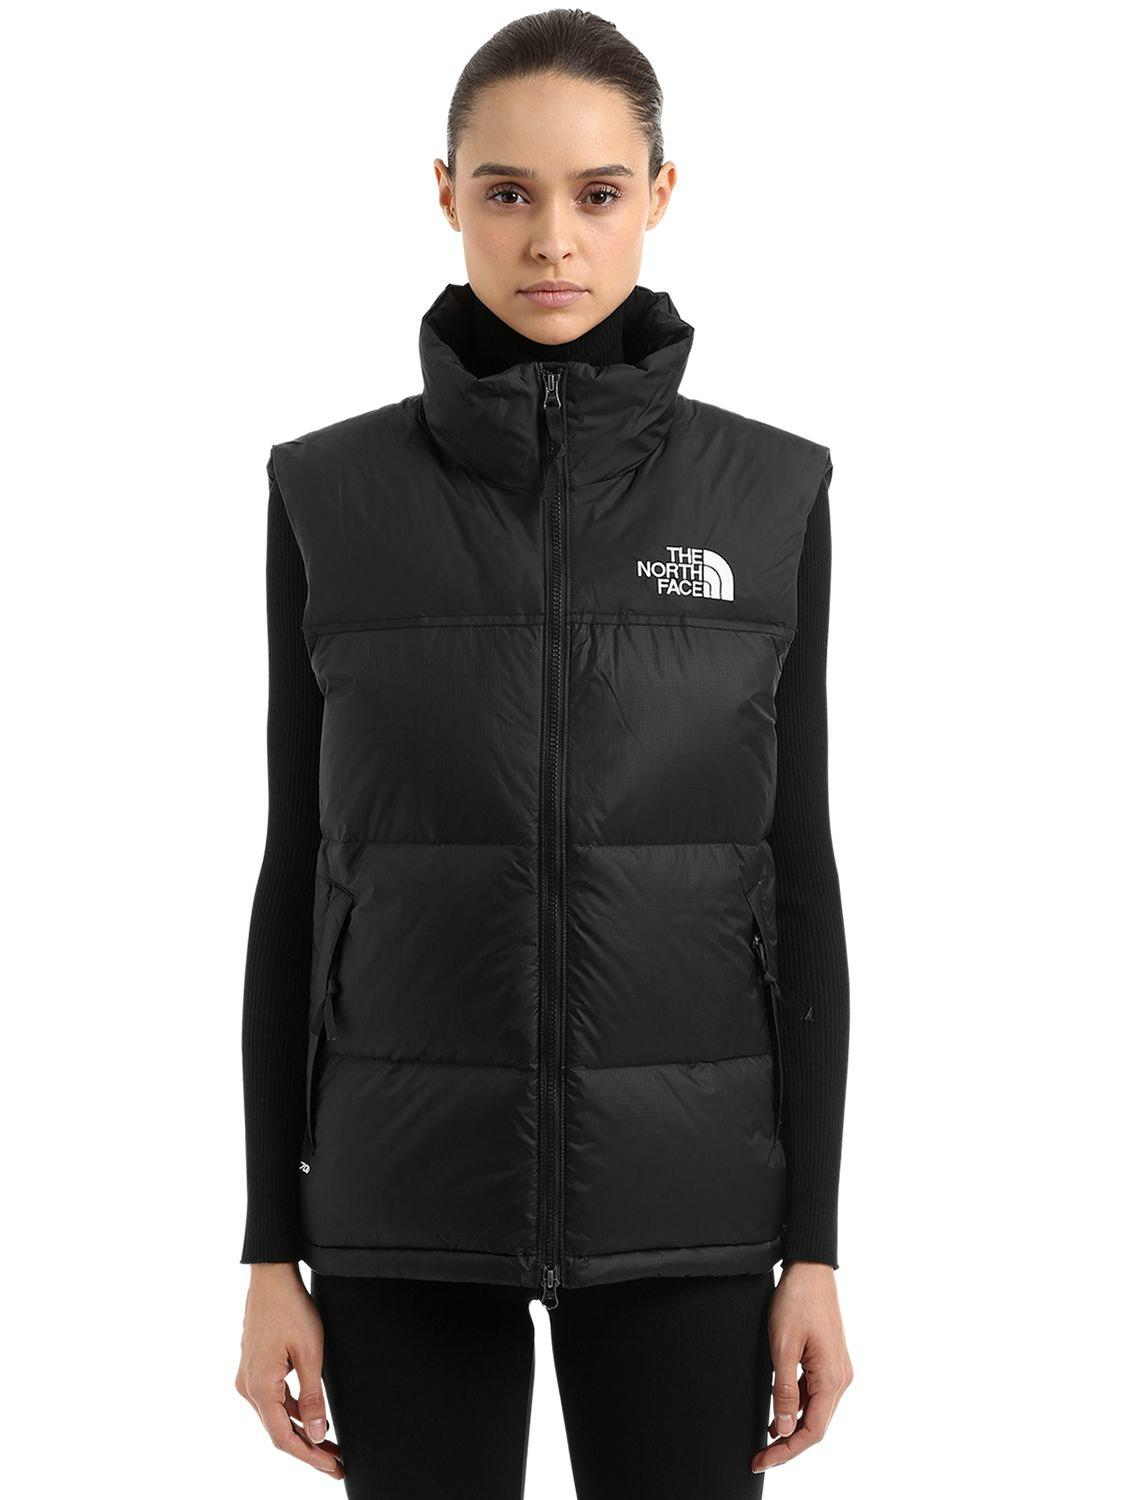 The North Face 1996 Retro Nuptse Down Vest in Black - Save 20% - Lyst e526bbc32